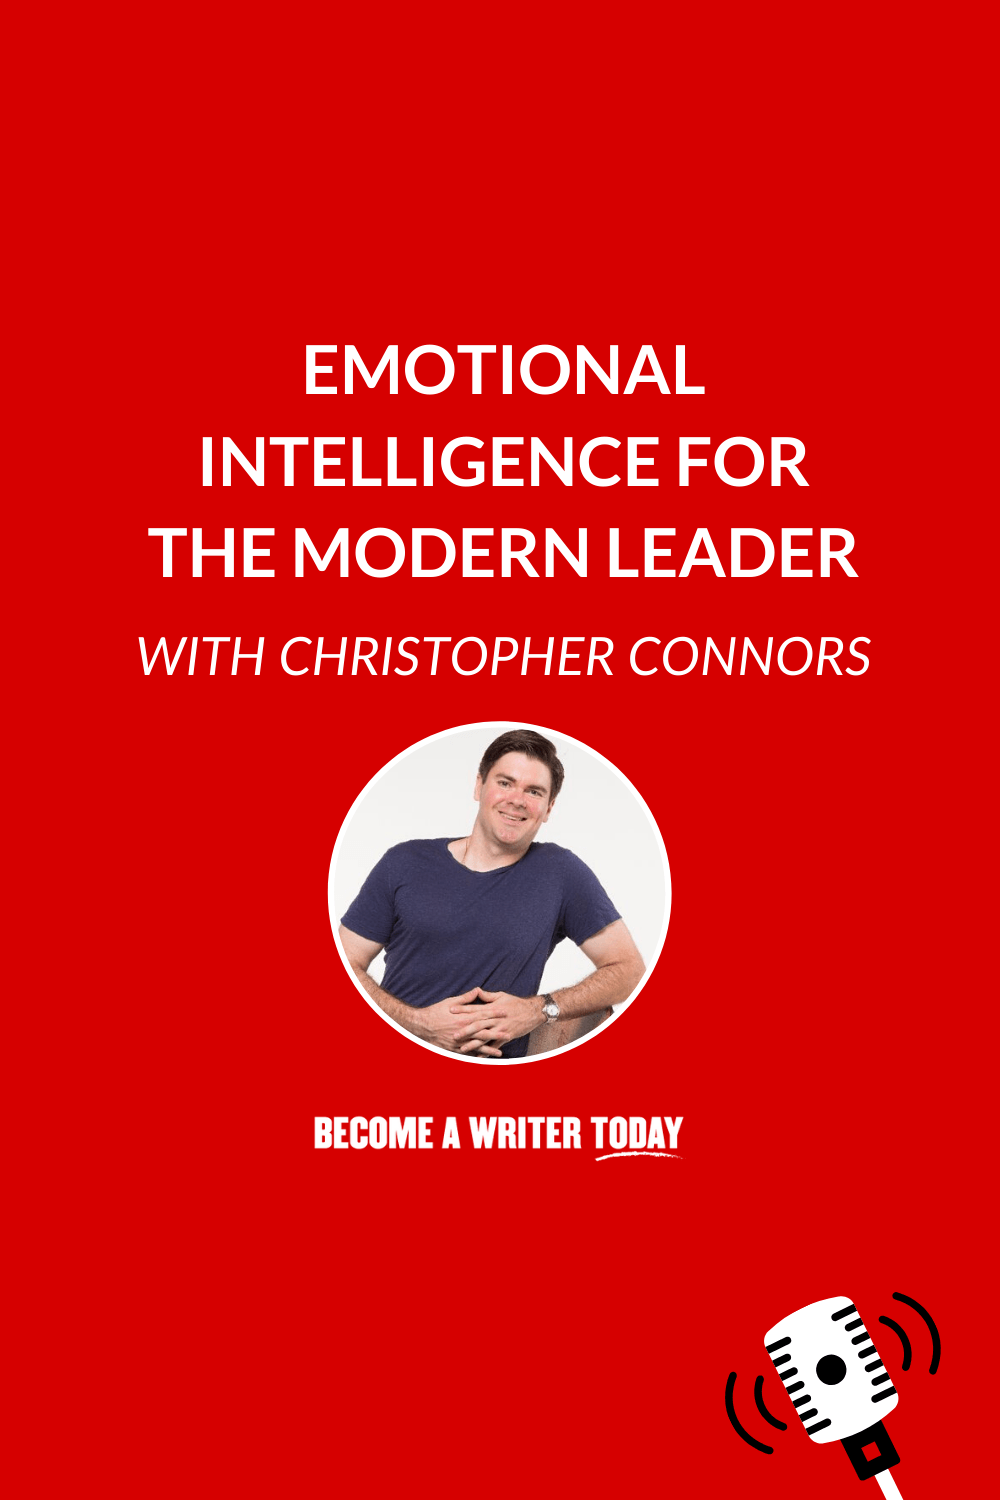 Emotional Intelligence for the Modern Leader with Christopher Connors